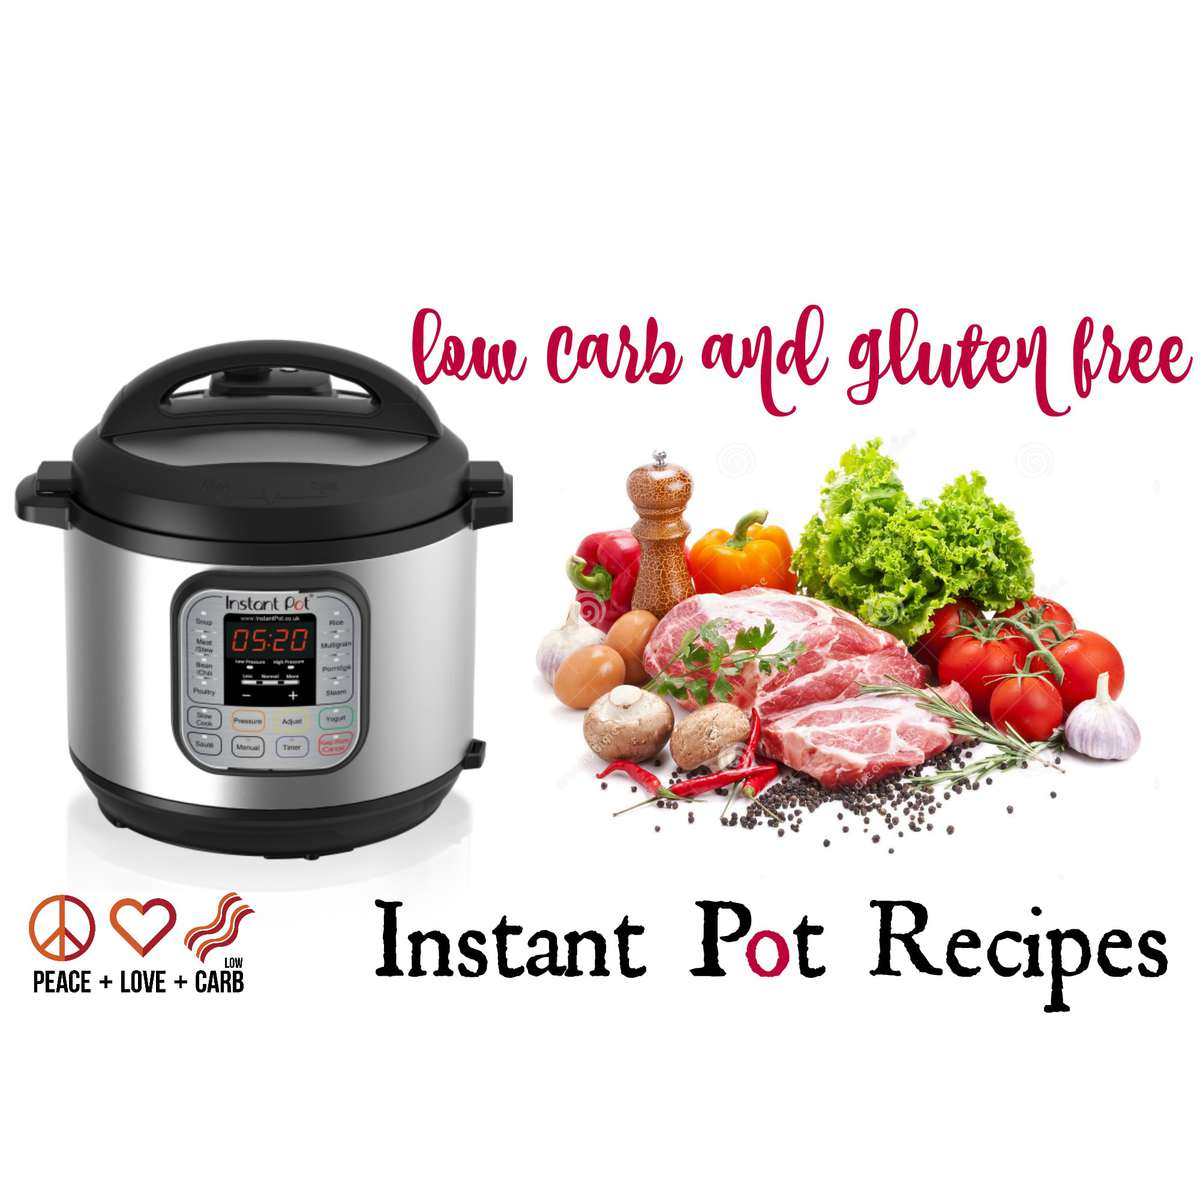 20 Low Carb Instant Pot Recipes | Peace Love and Low Carb